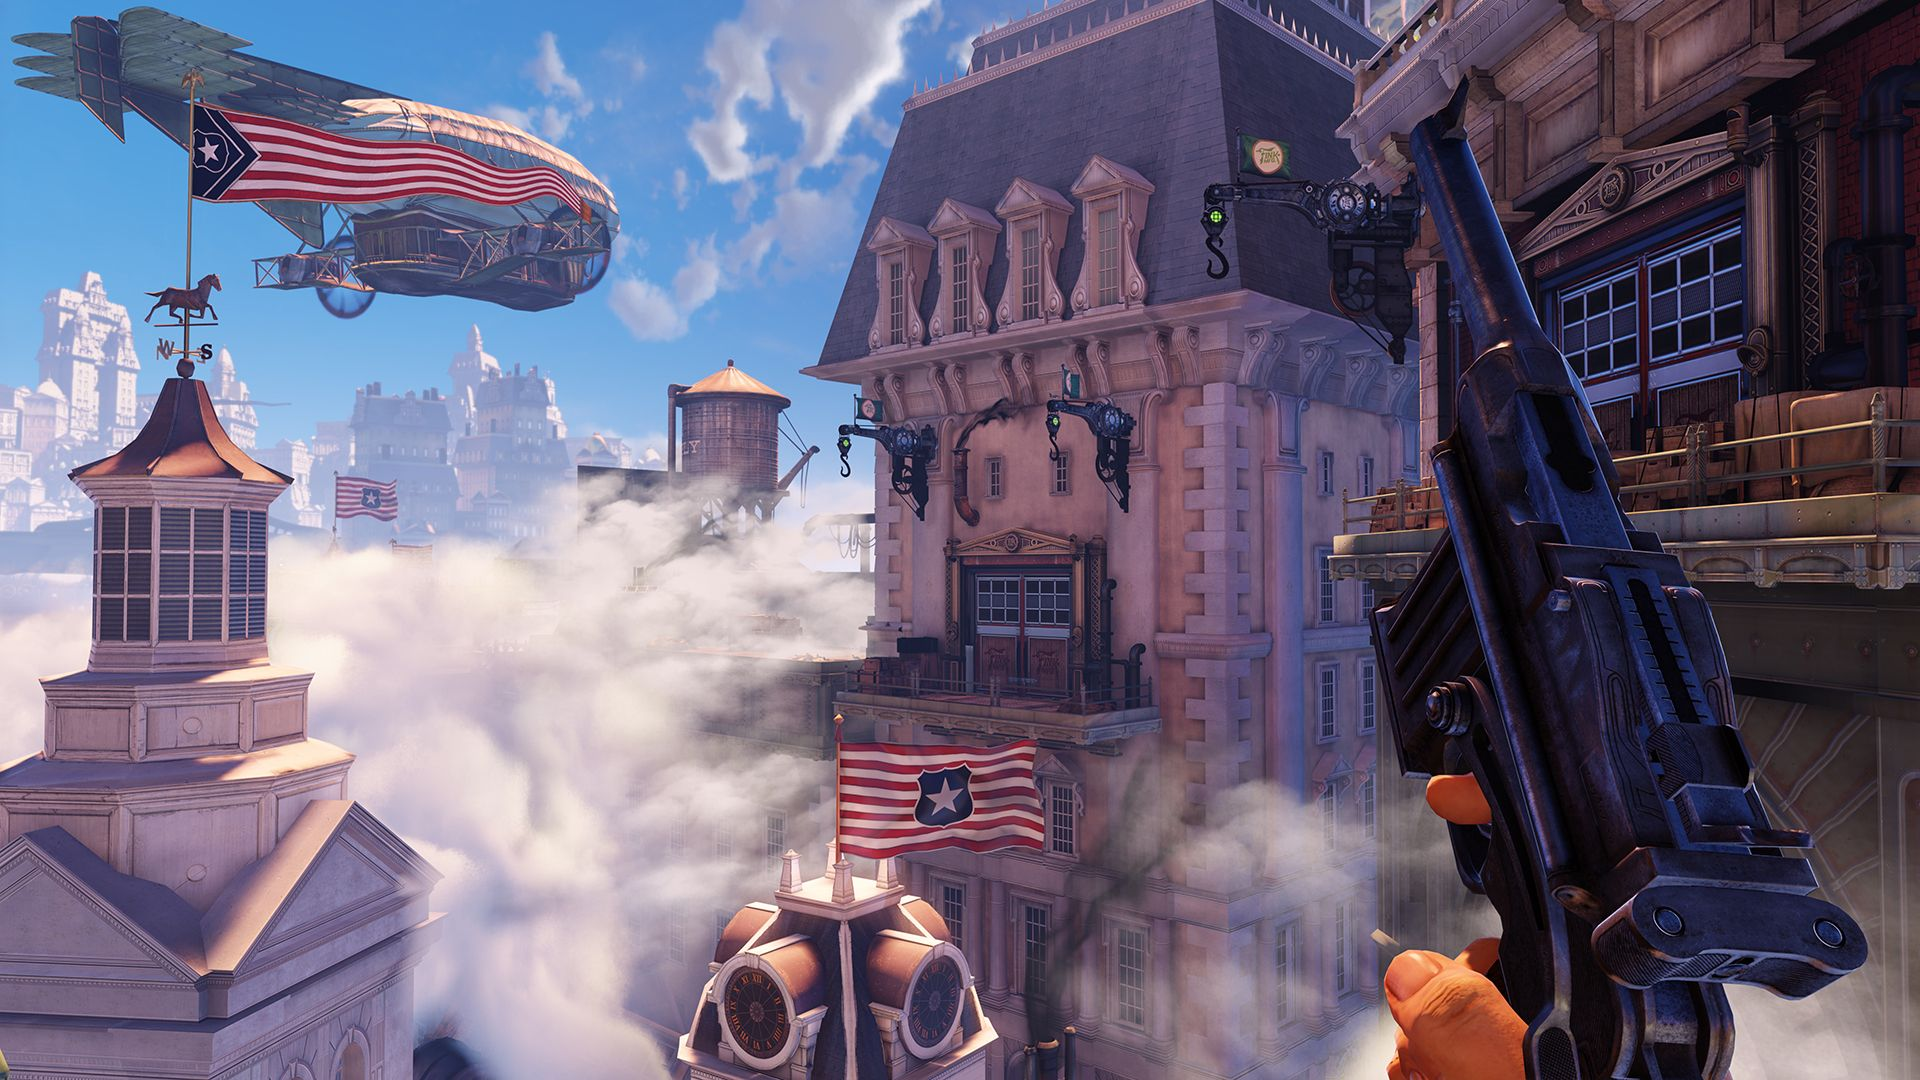 Columbia is vibrant and artfully designed but it's subtlety makes it less absorbing than BioShock's Rapture